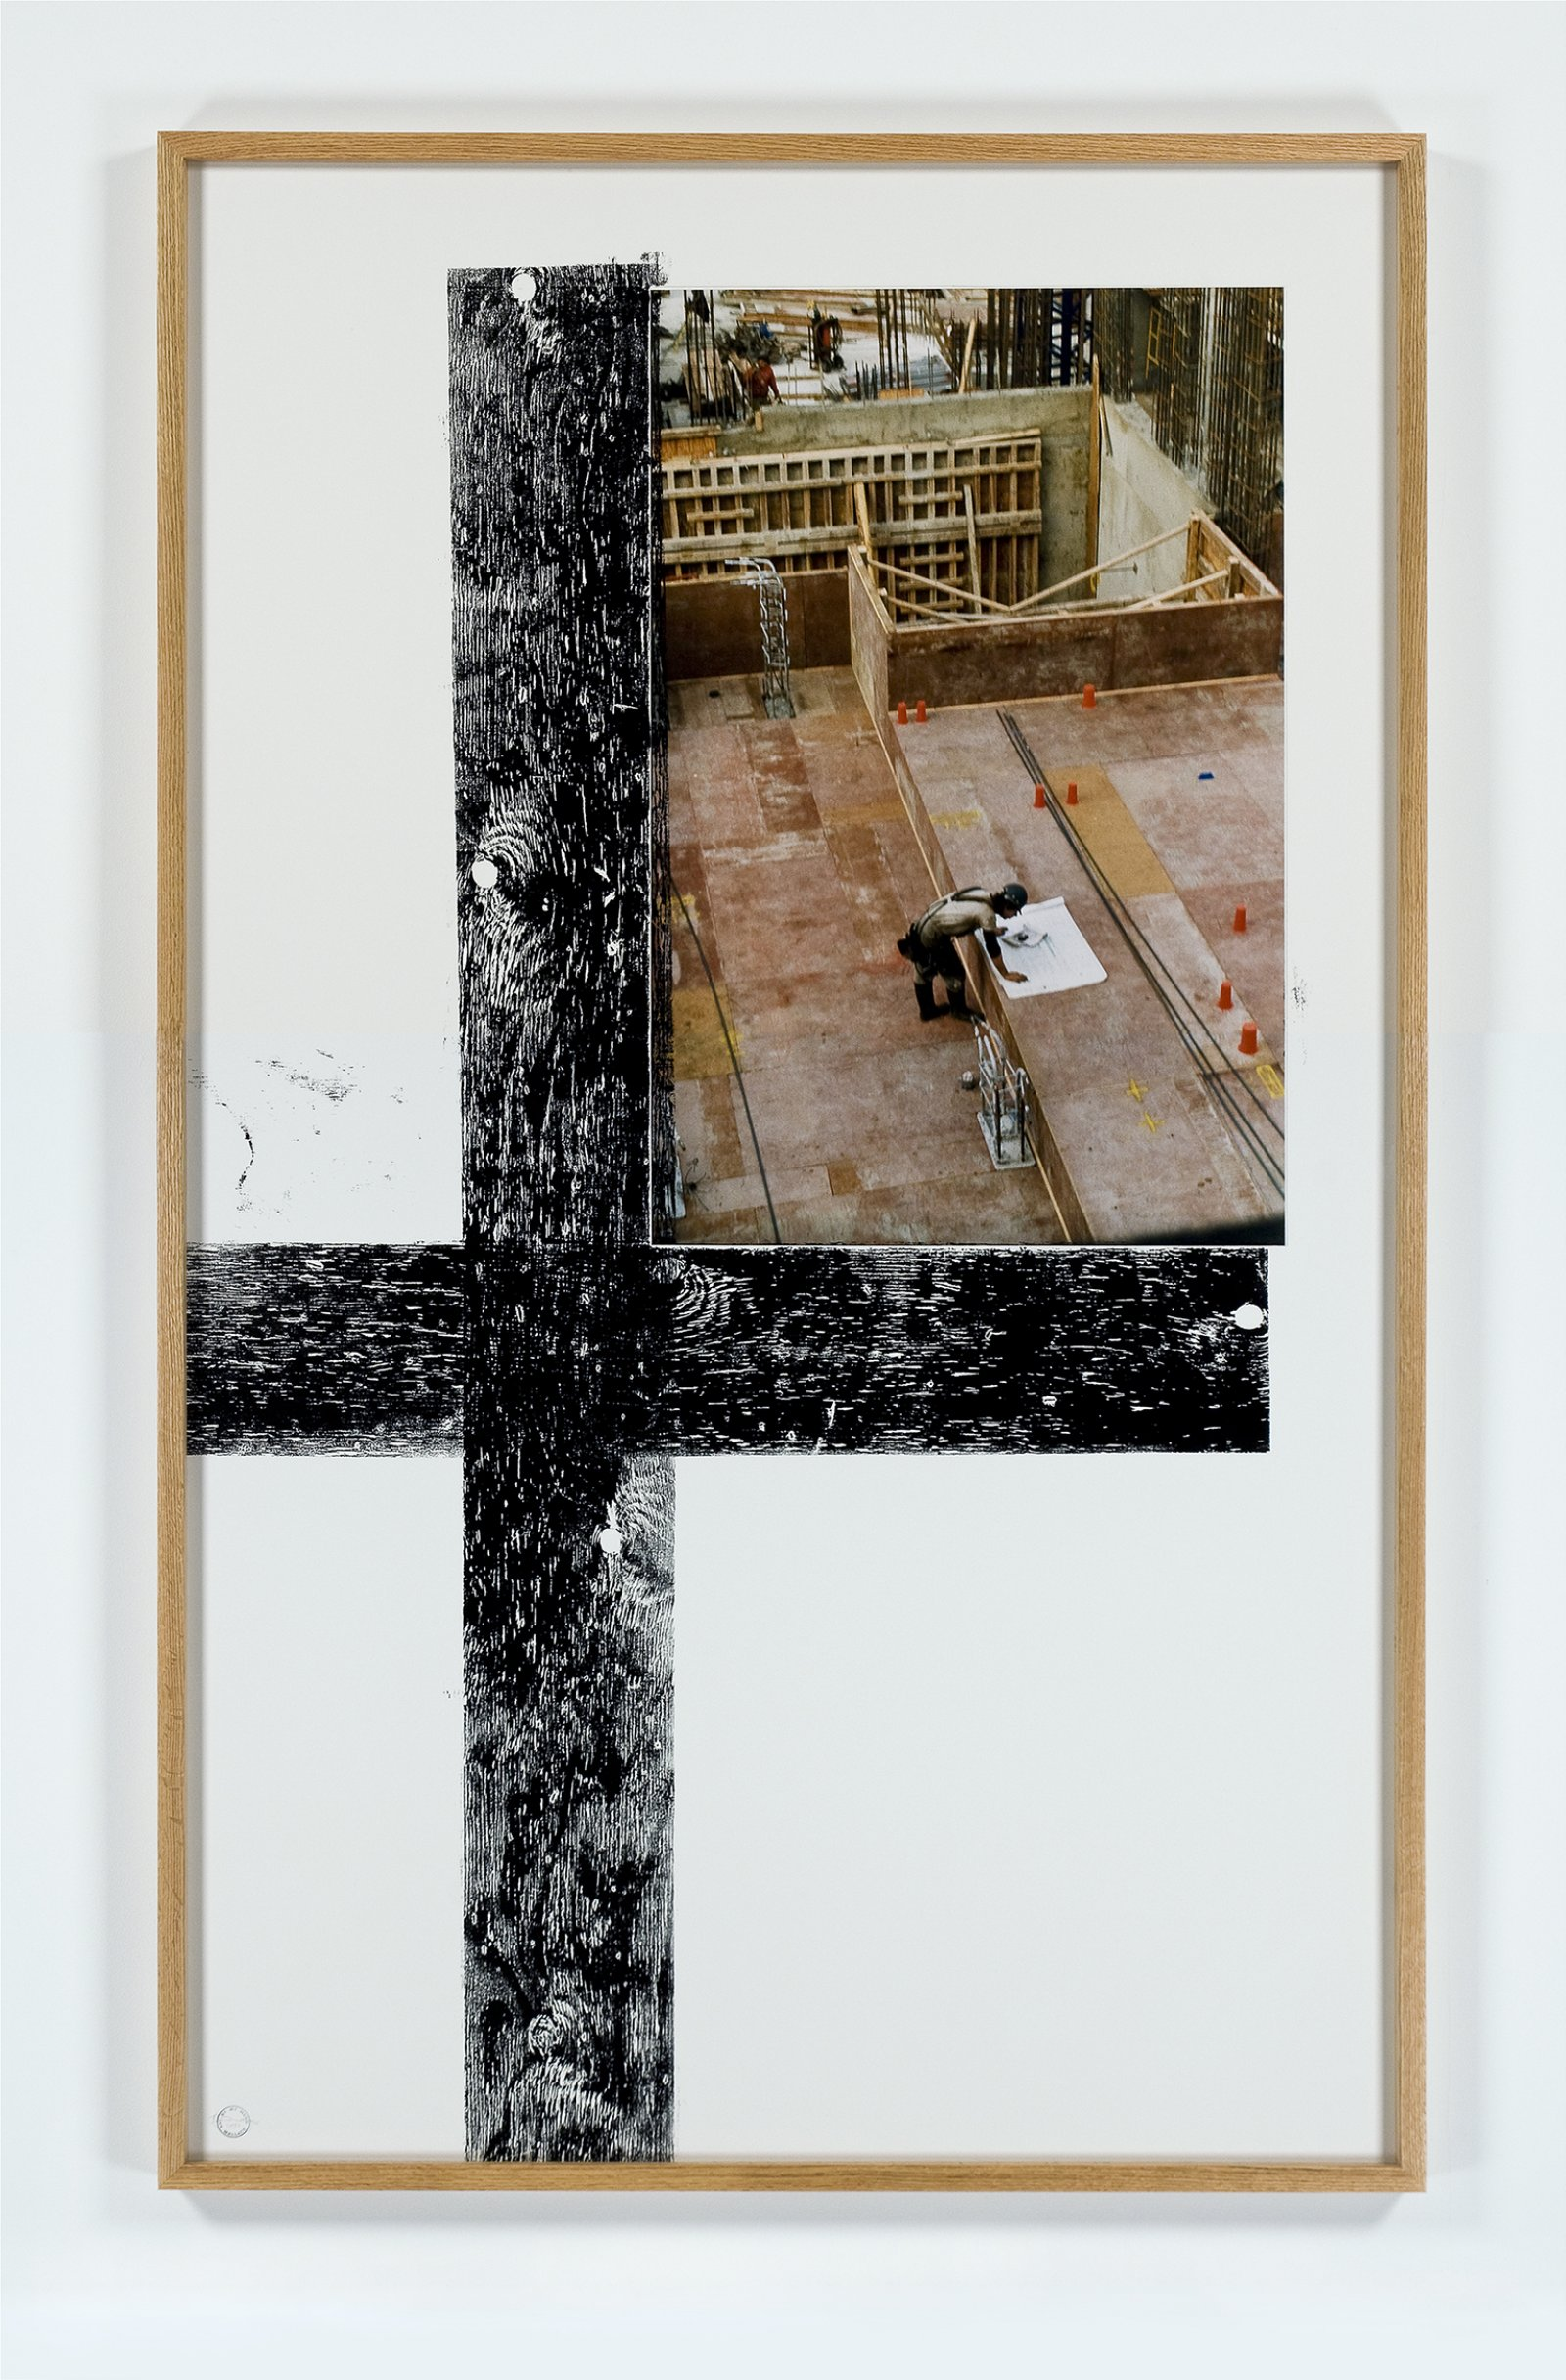 ​Ian Wallace, Construction Site I & II, 1992, 2 photo and ink monoprints on paper, each 77 x 47 in. (196 x 119 cm) ​ by Ian Wallace